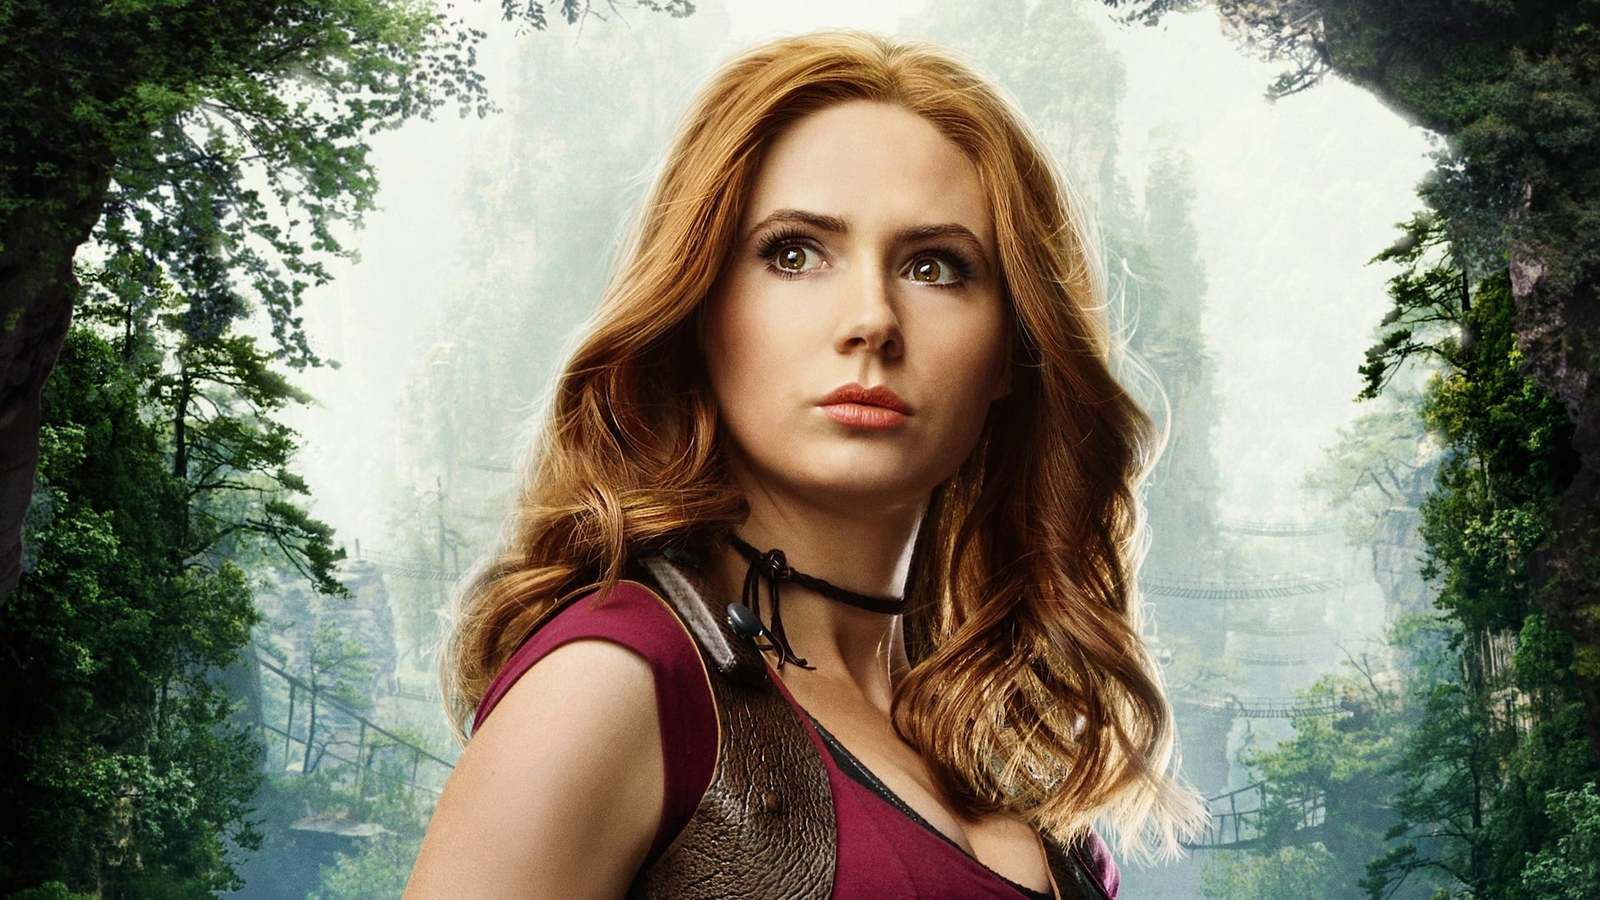 Filme Online Jumanji The Next Level 2020 Hd Subtitrat în Română Jumanji The Next Level